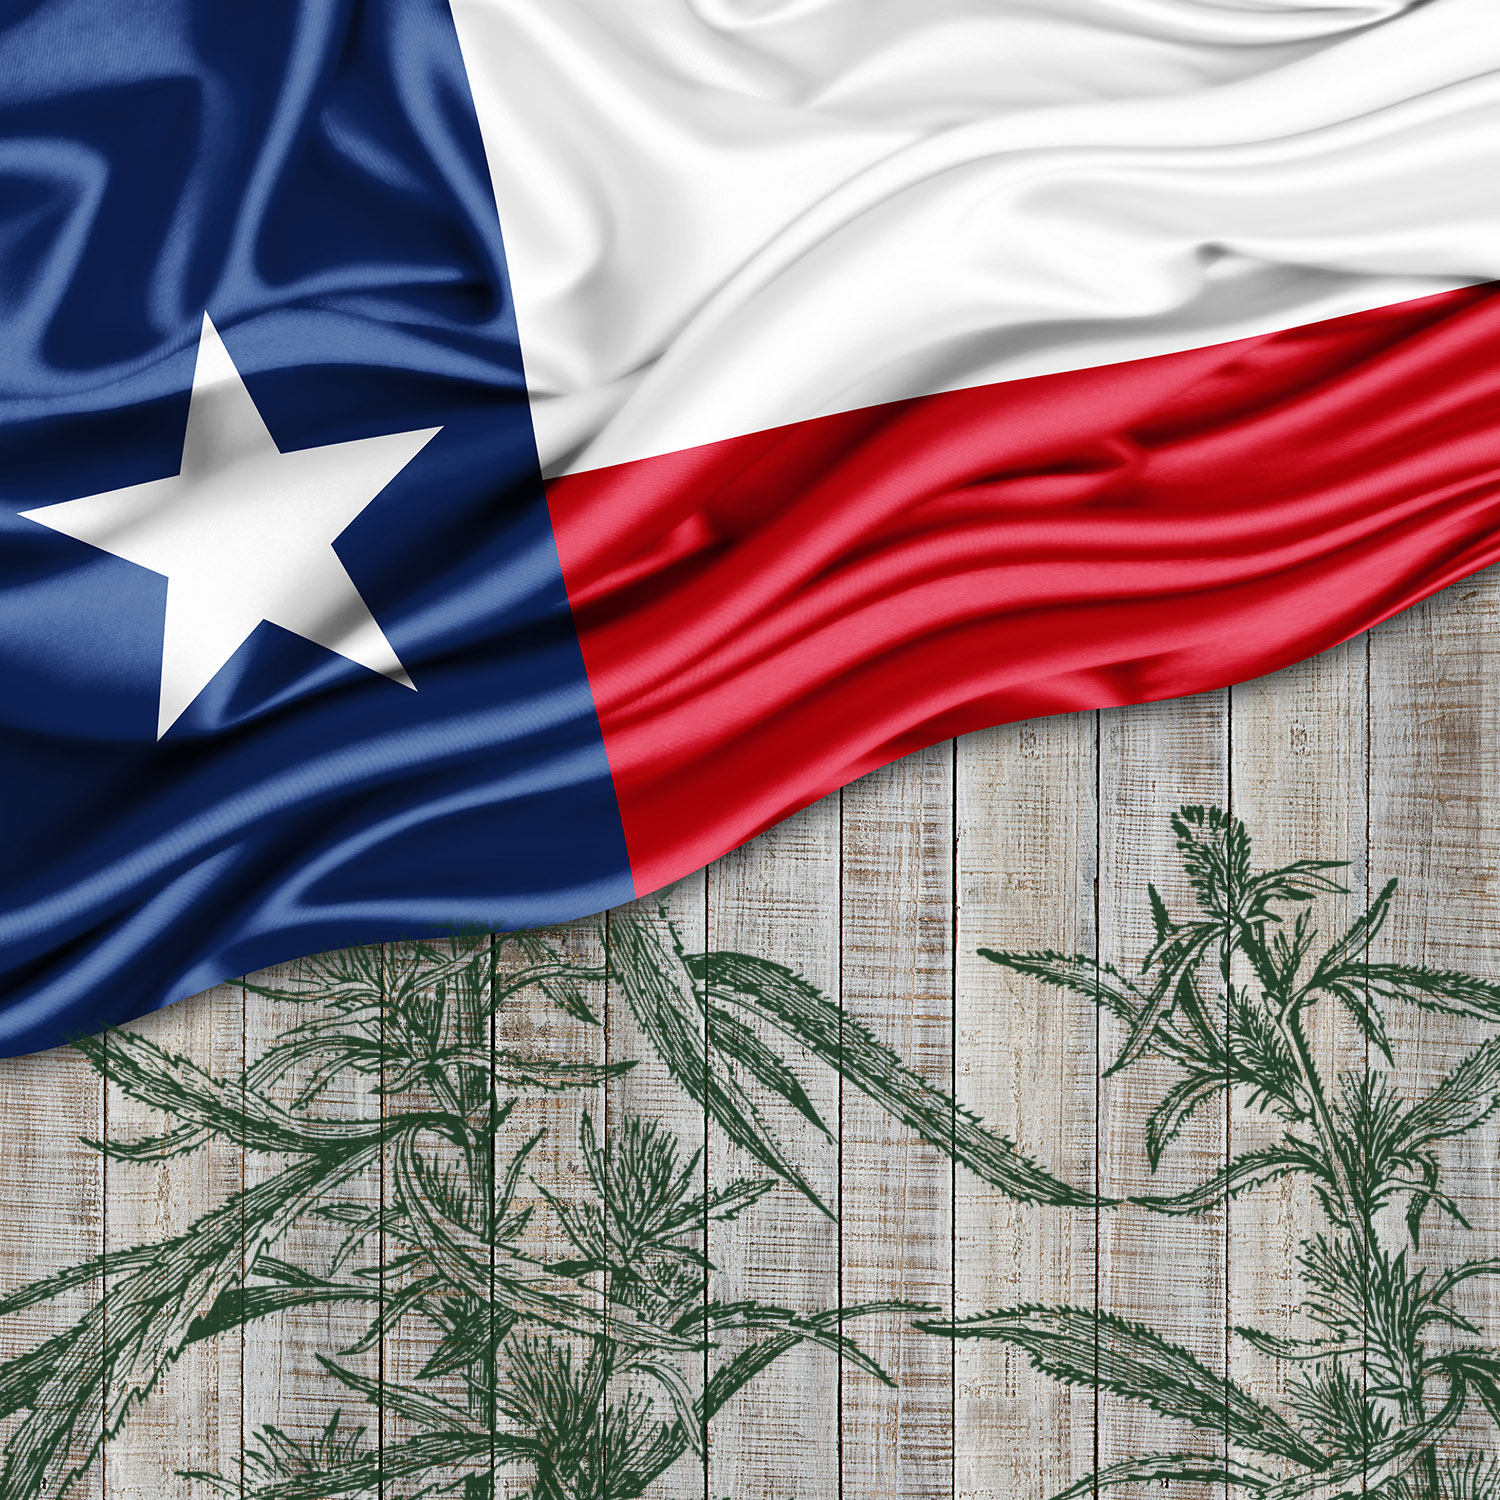 Texas Medical Marijuana Expansion Bill Advances